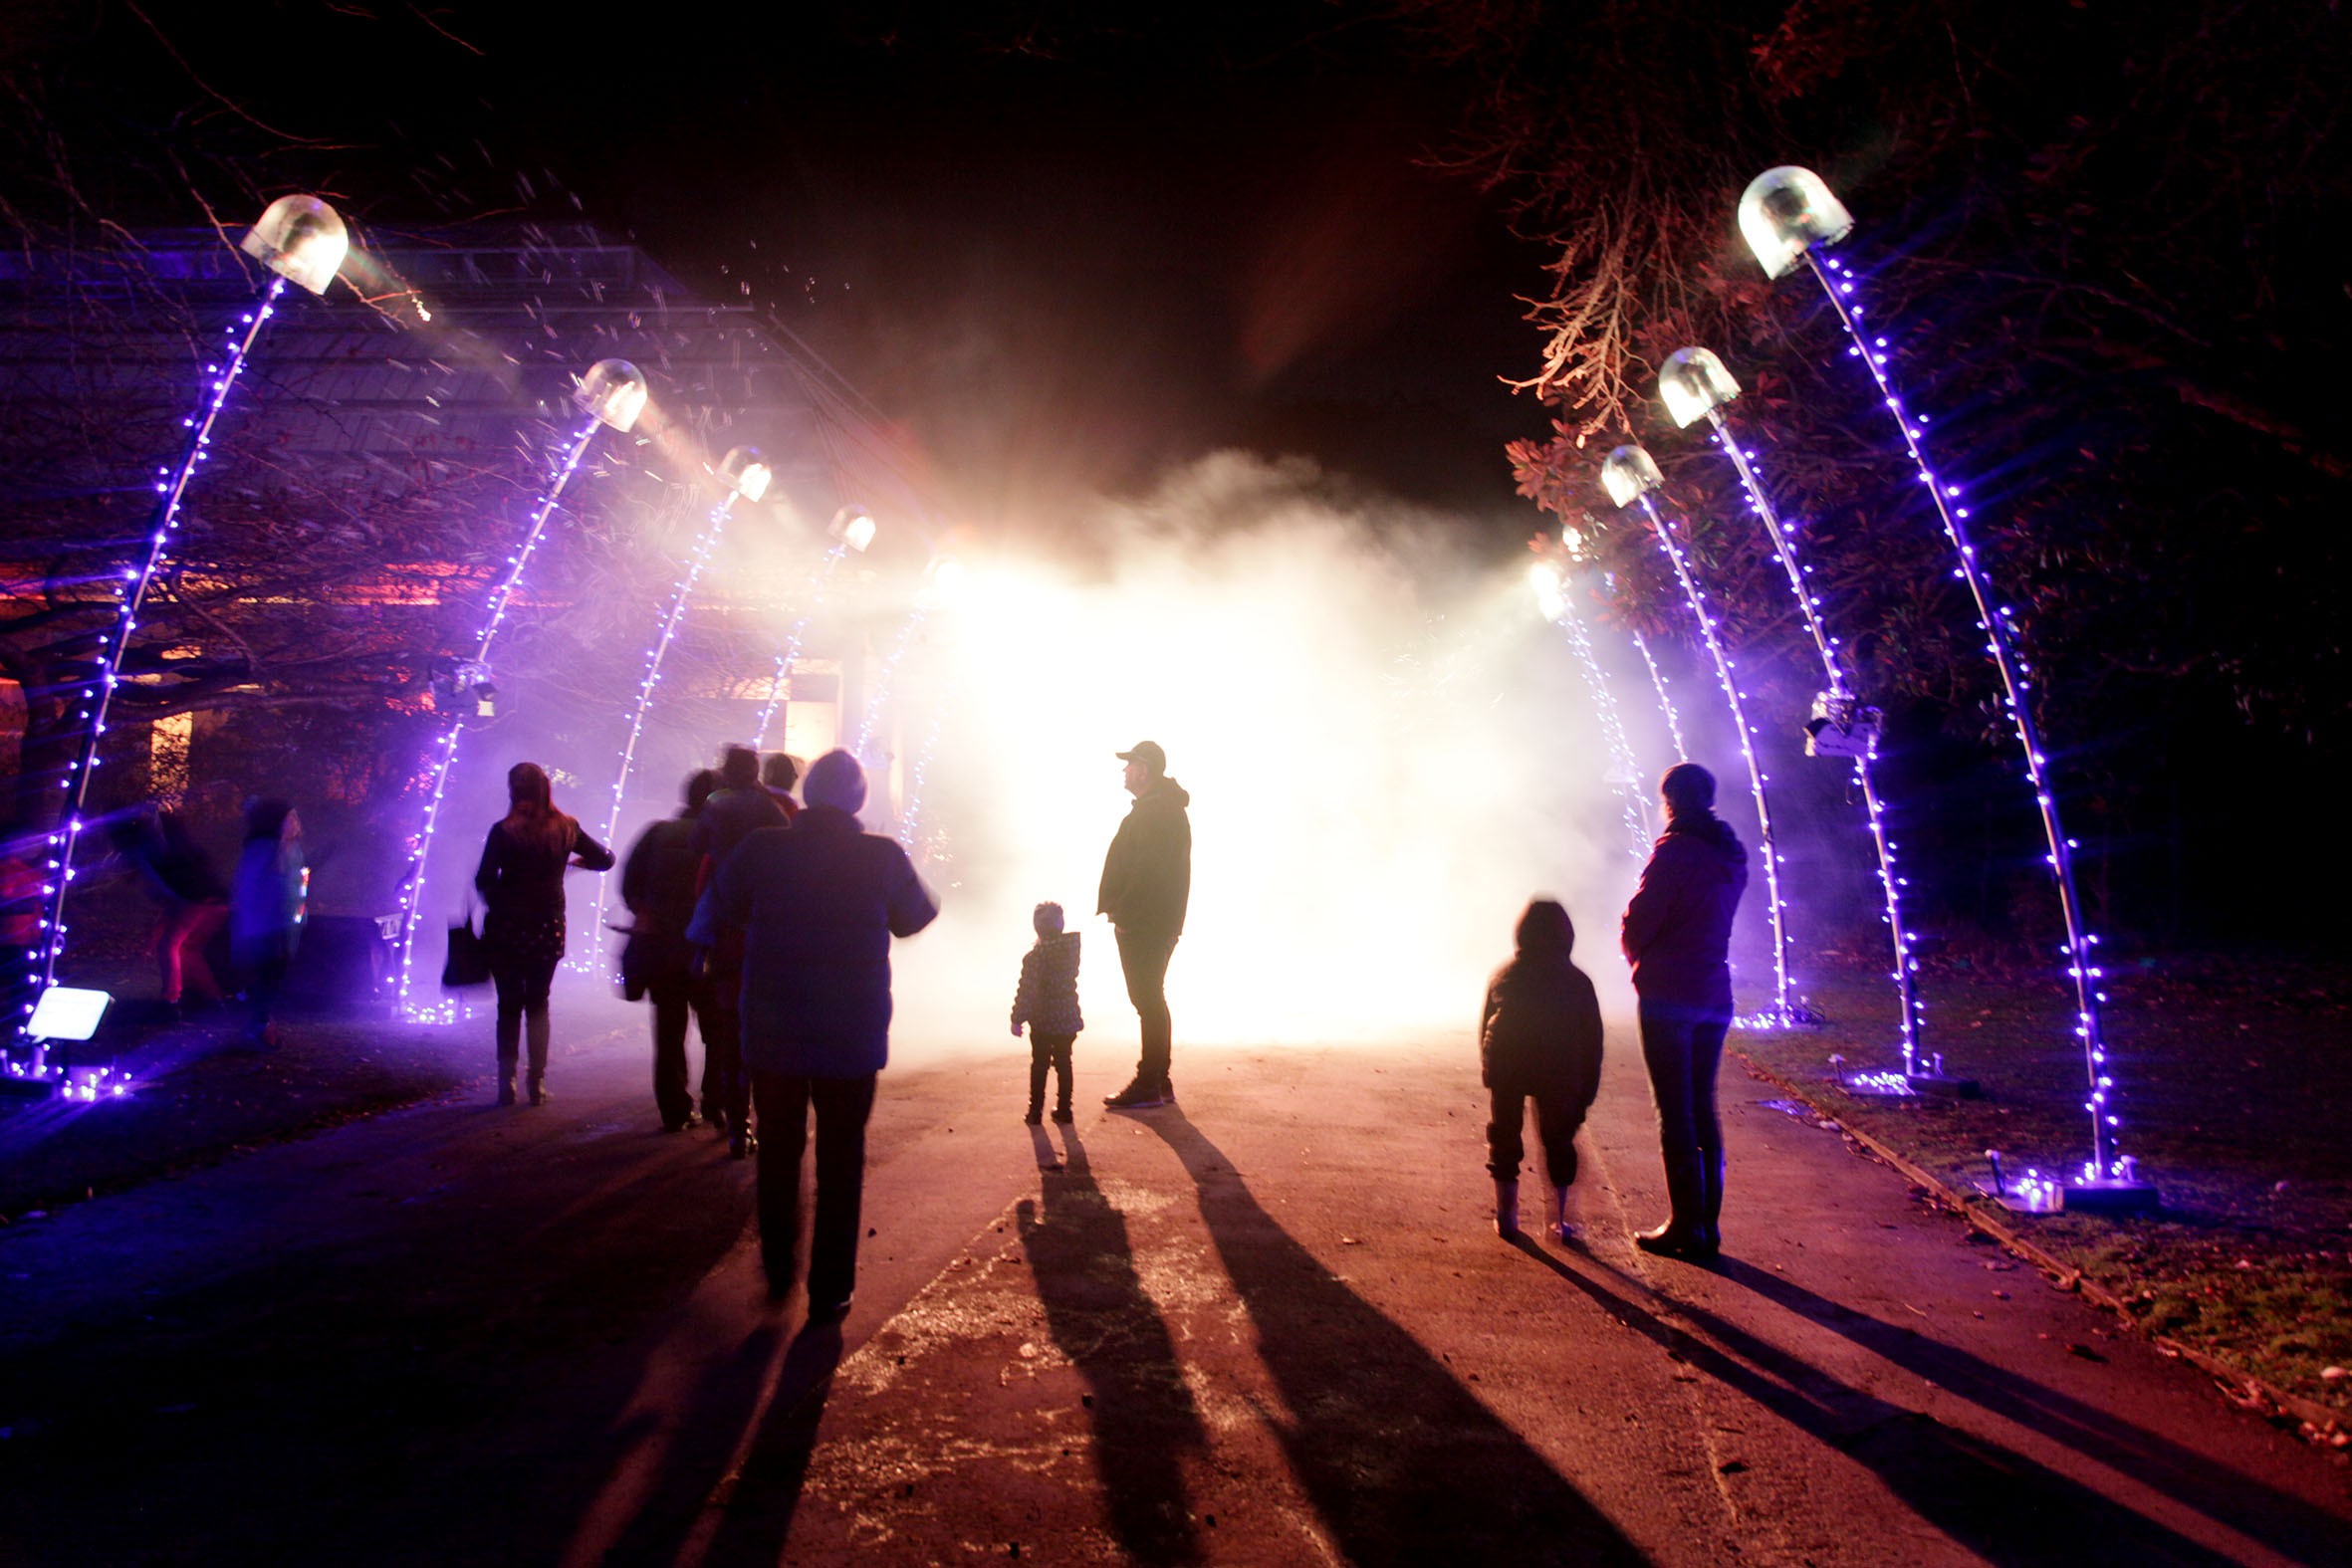 The Rangiora Light and Sound Festival hopes to build on the success of Christchurch's Botanic D...